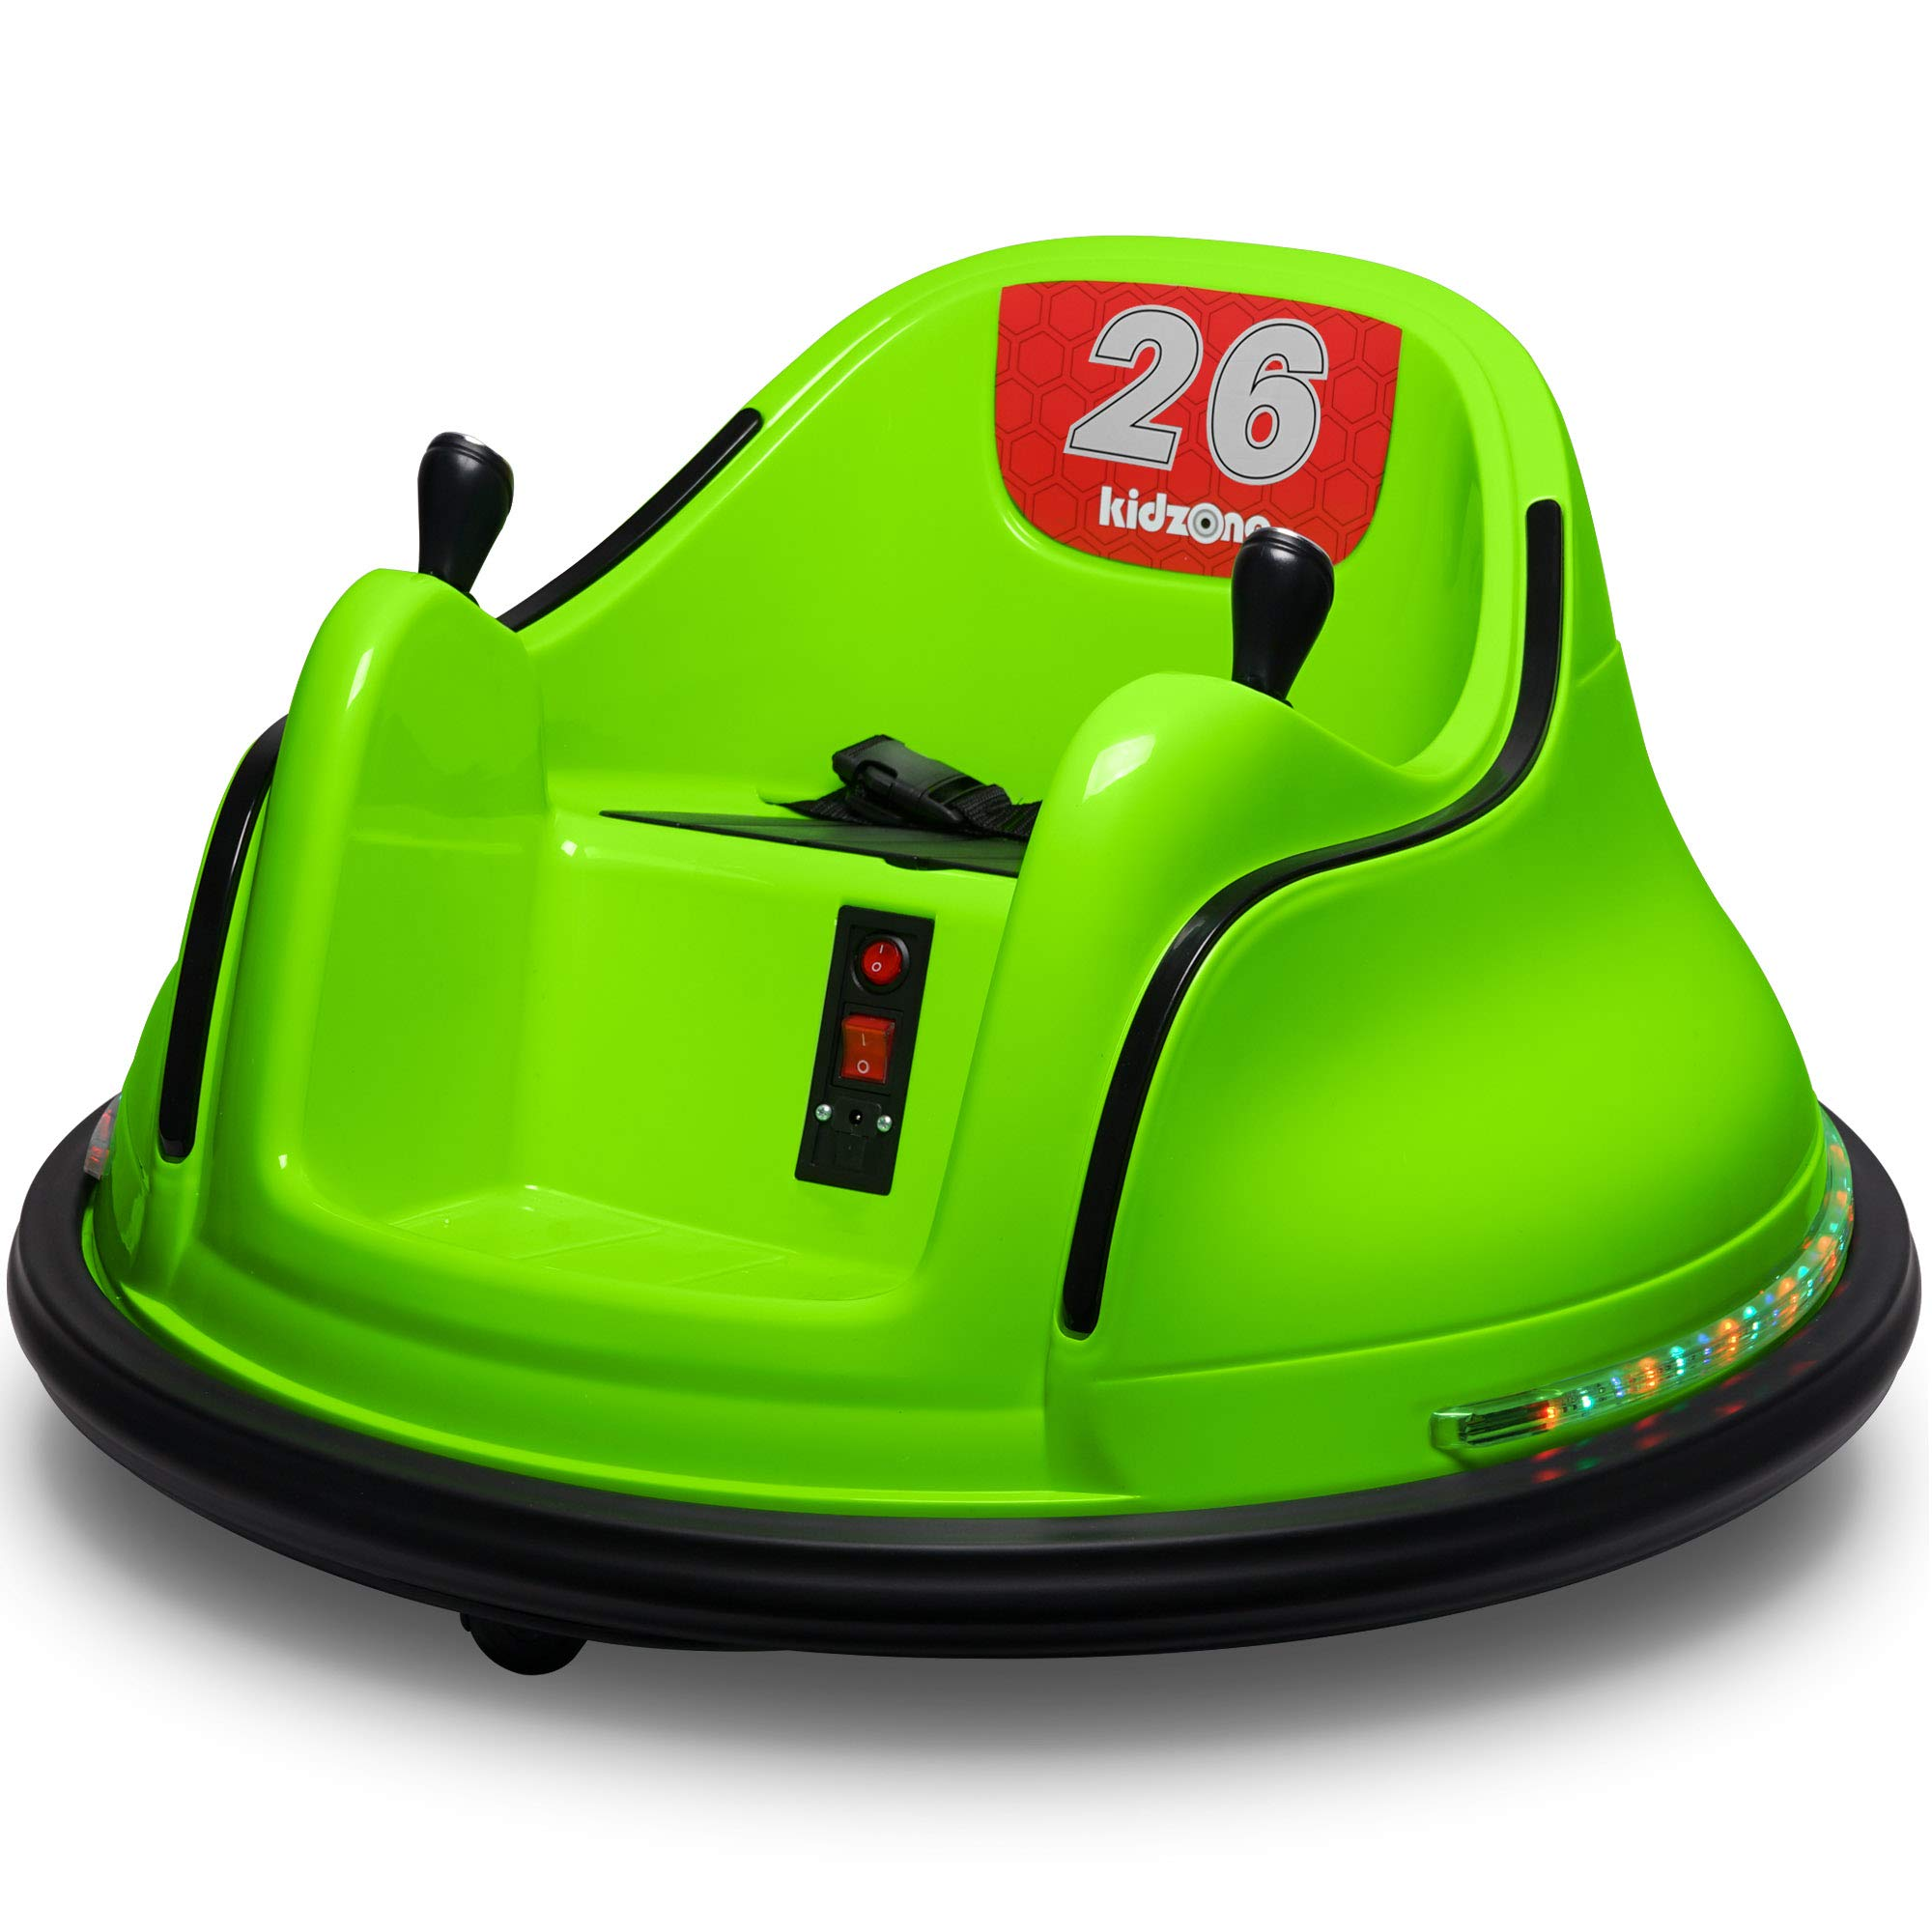 Kidzone DIY Race #00-99 6V Kids Toy Electric Ride On Bumper Car Vehicle Remote Control 360 Spin ASTM-Certified Green